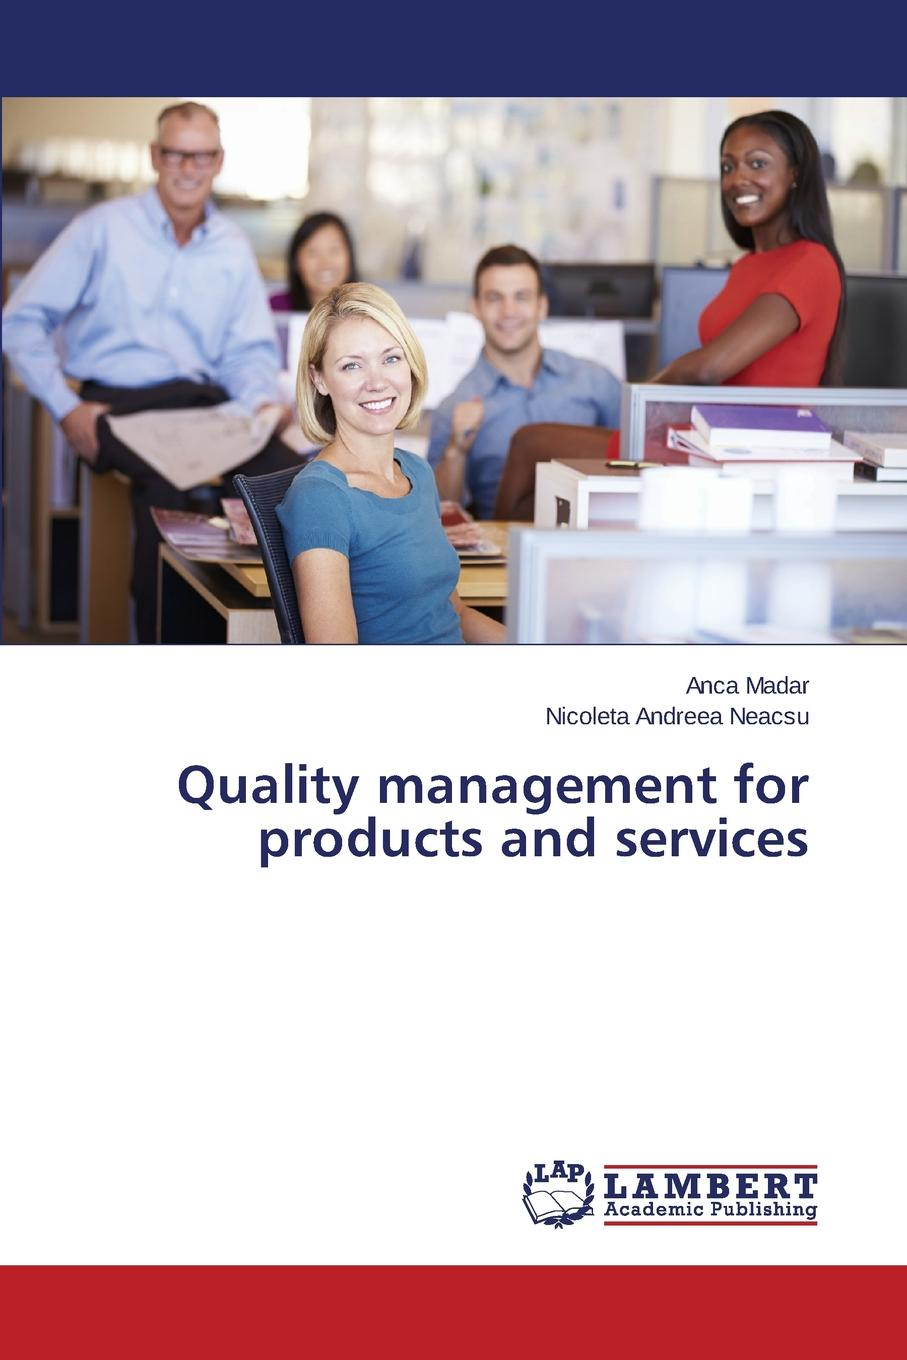 Madar Anca, Neacsu Nicoleta Andreea Quality management for products and services